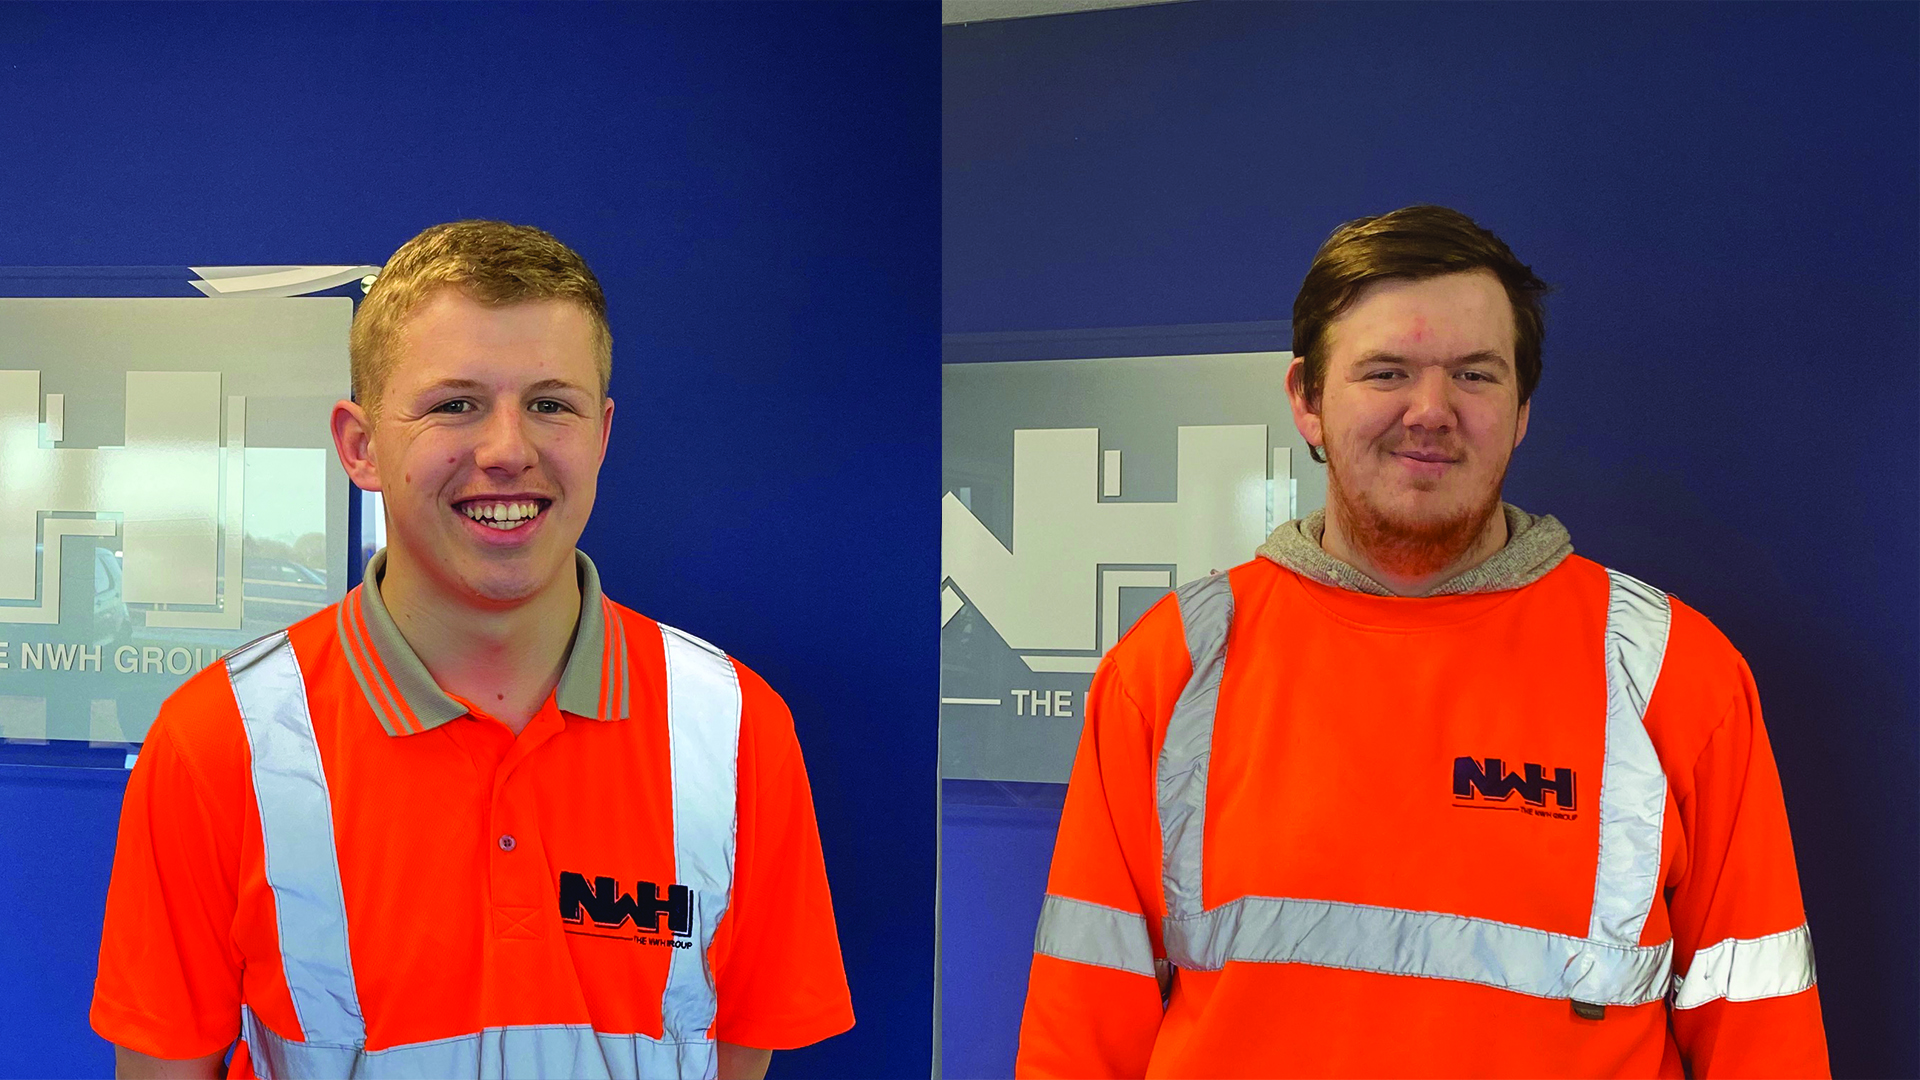 Apprentice success at NWH Group